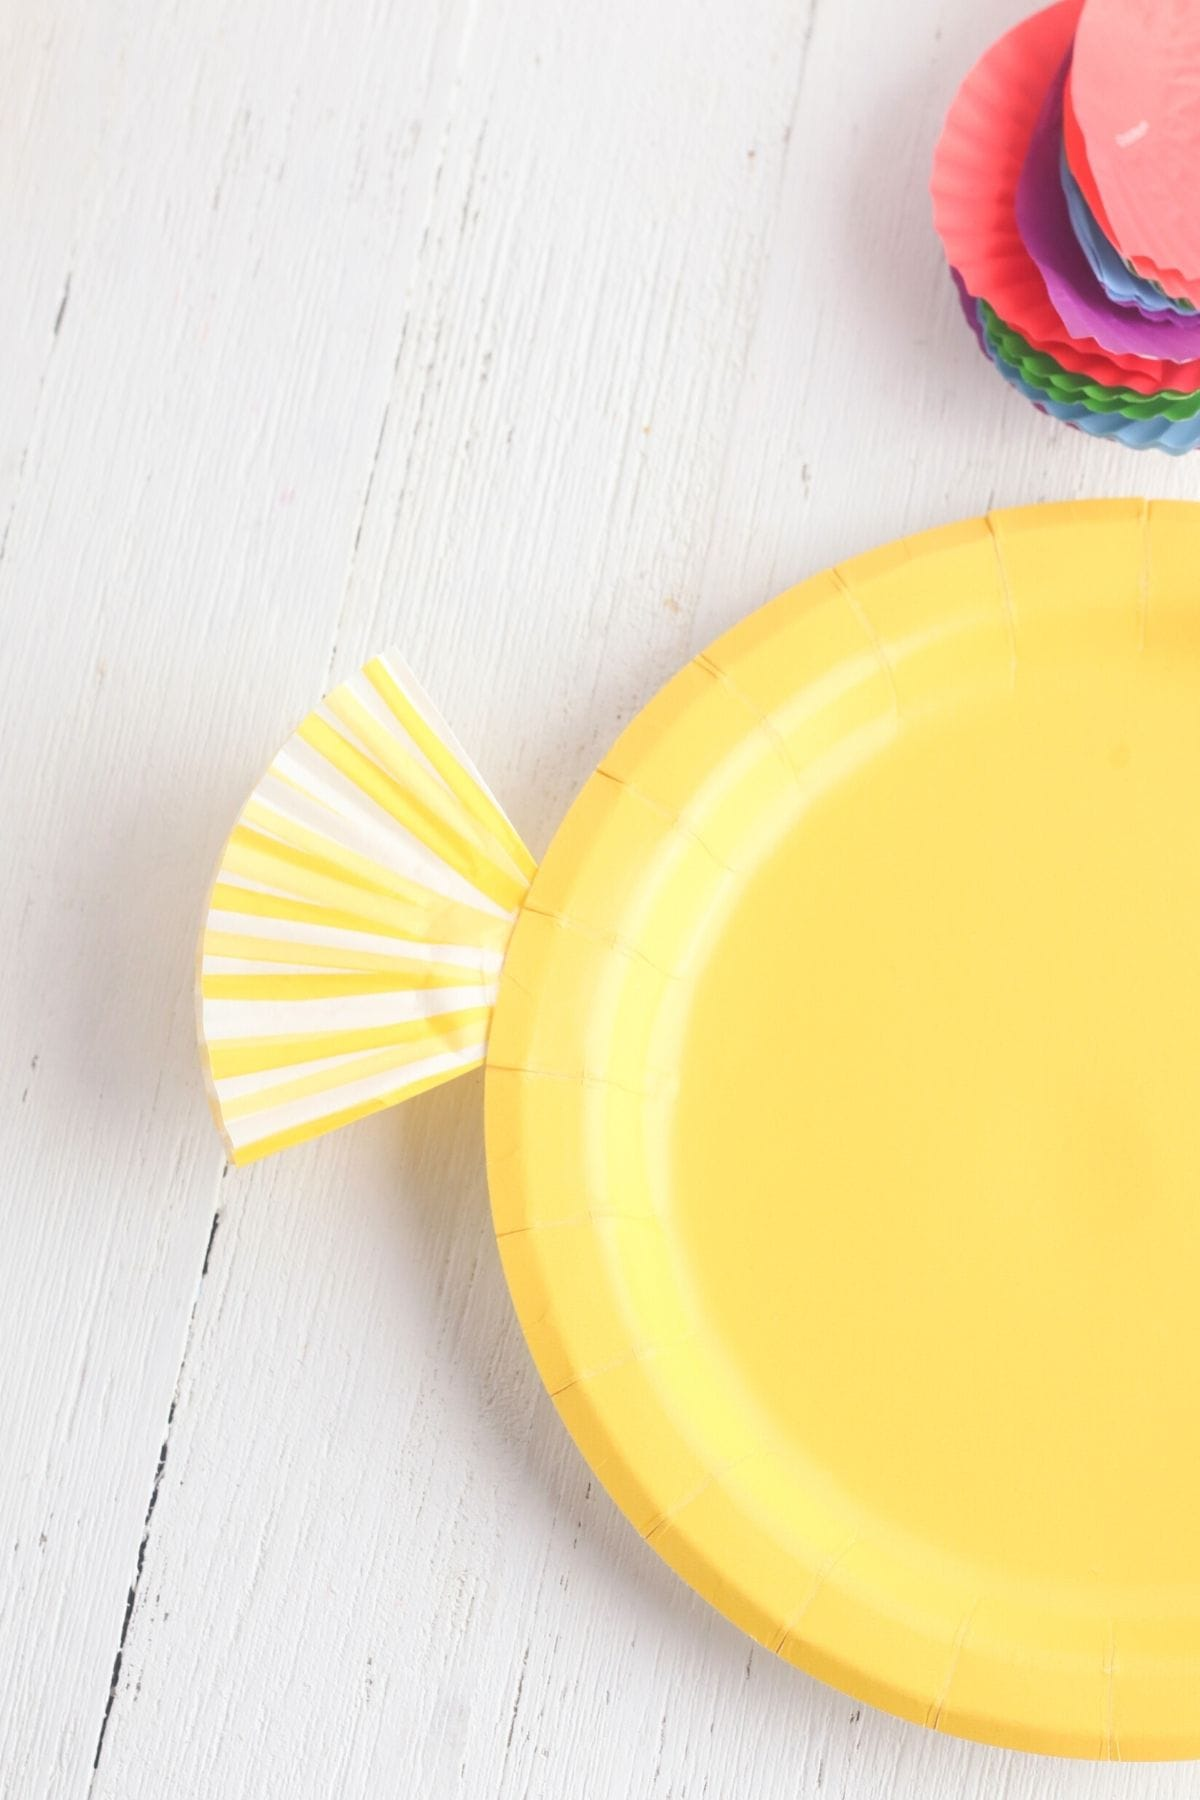 Creating a fish out of paper plate